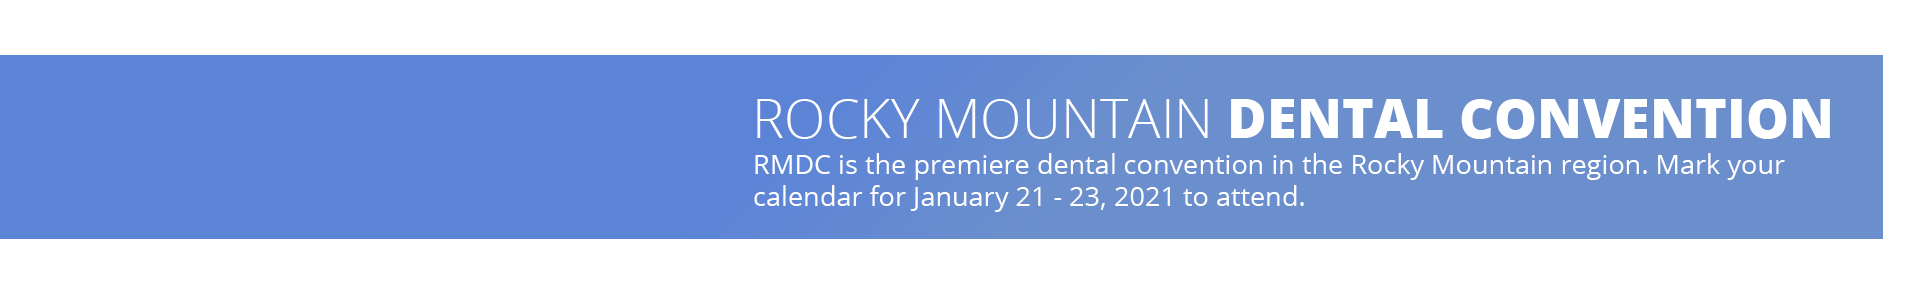 rocky mountain dental convention january 21 - 23, 2021